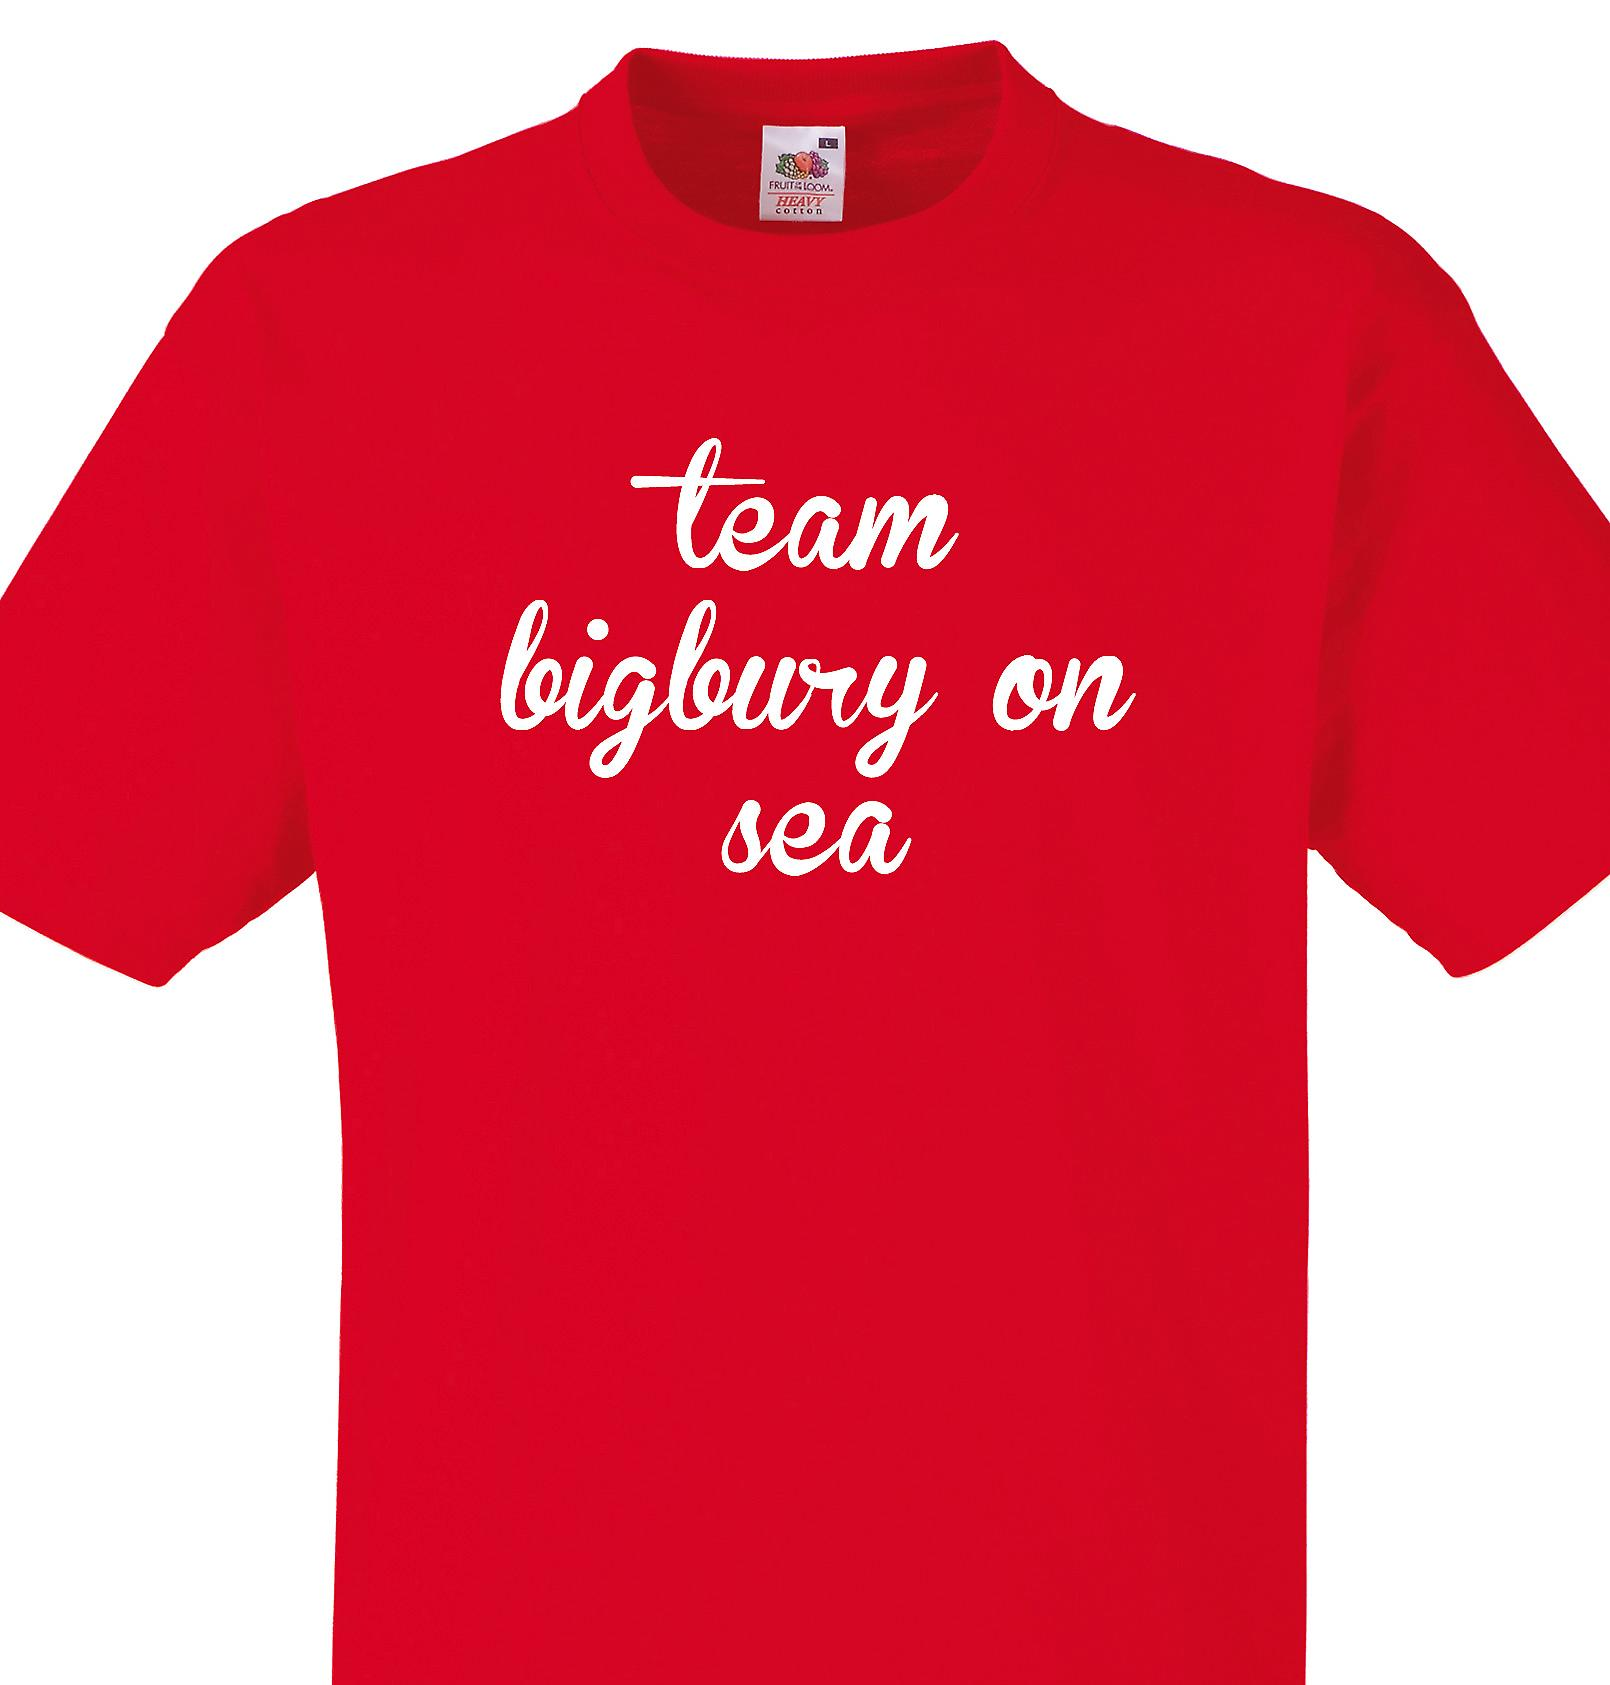 Team Bigbury on sea Red T shirt